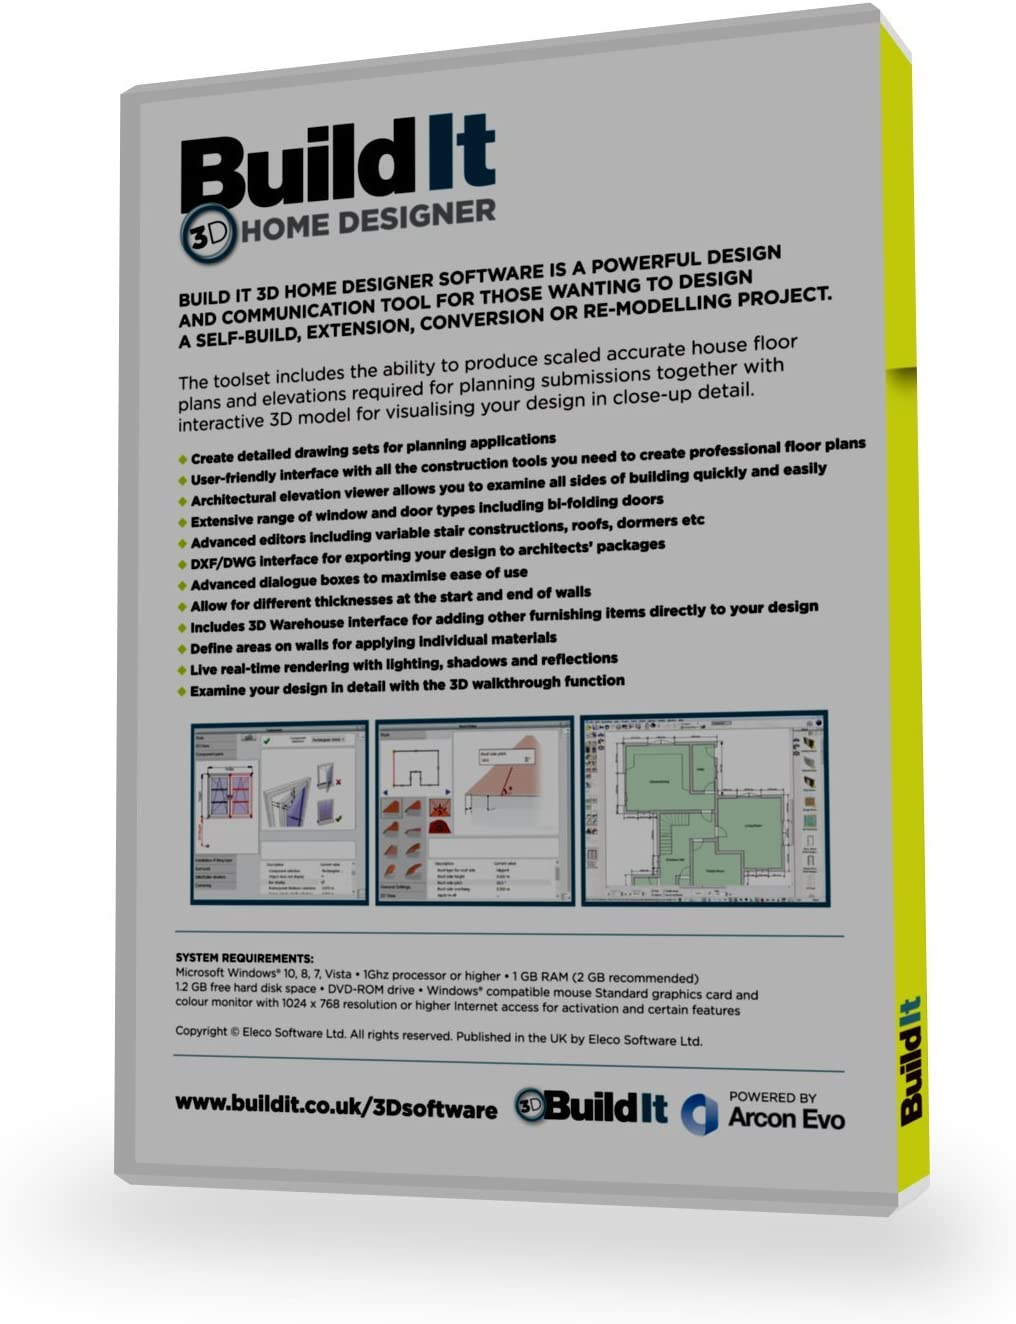 Build It 3d Home Designer Software For The Self Builder Or Home Improver Looking To Design Their Own Home Extension Or Complex Renovation Amazon Co Uk Software